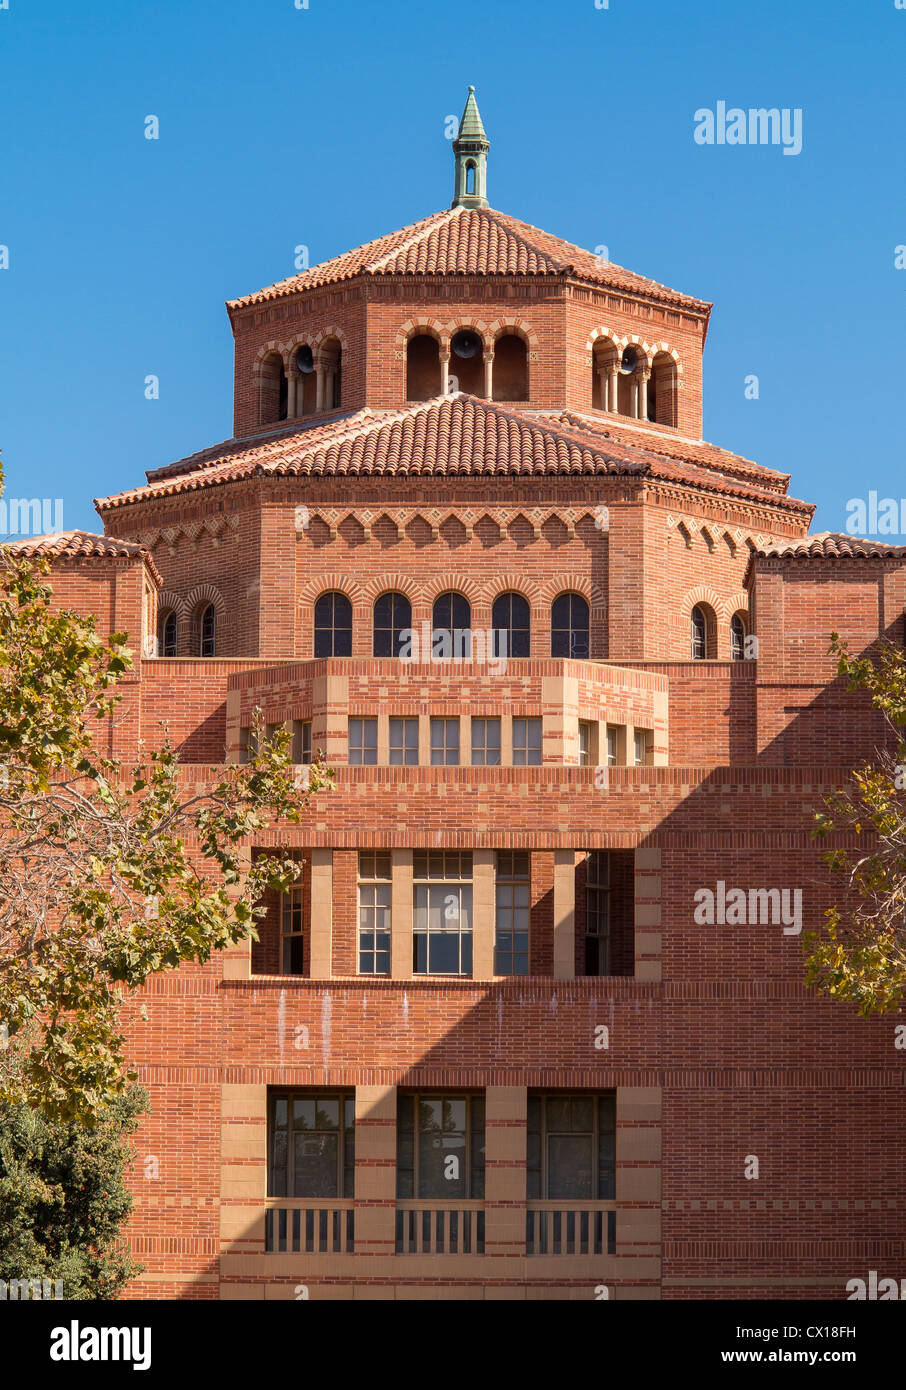 LOS ANGELES, CALIFORNIA, USA - Powell Library at UCLA. - Stock Image